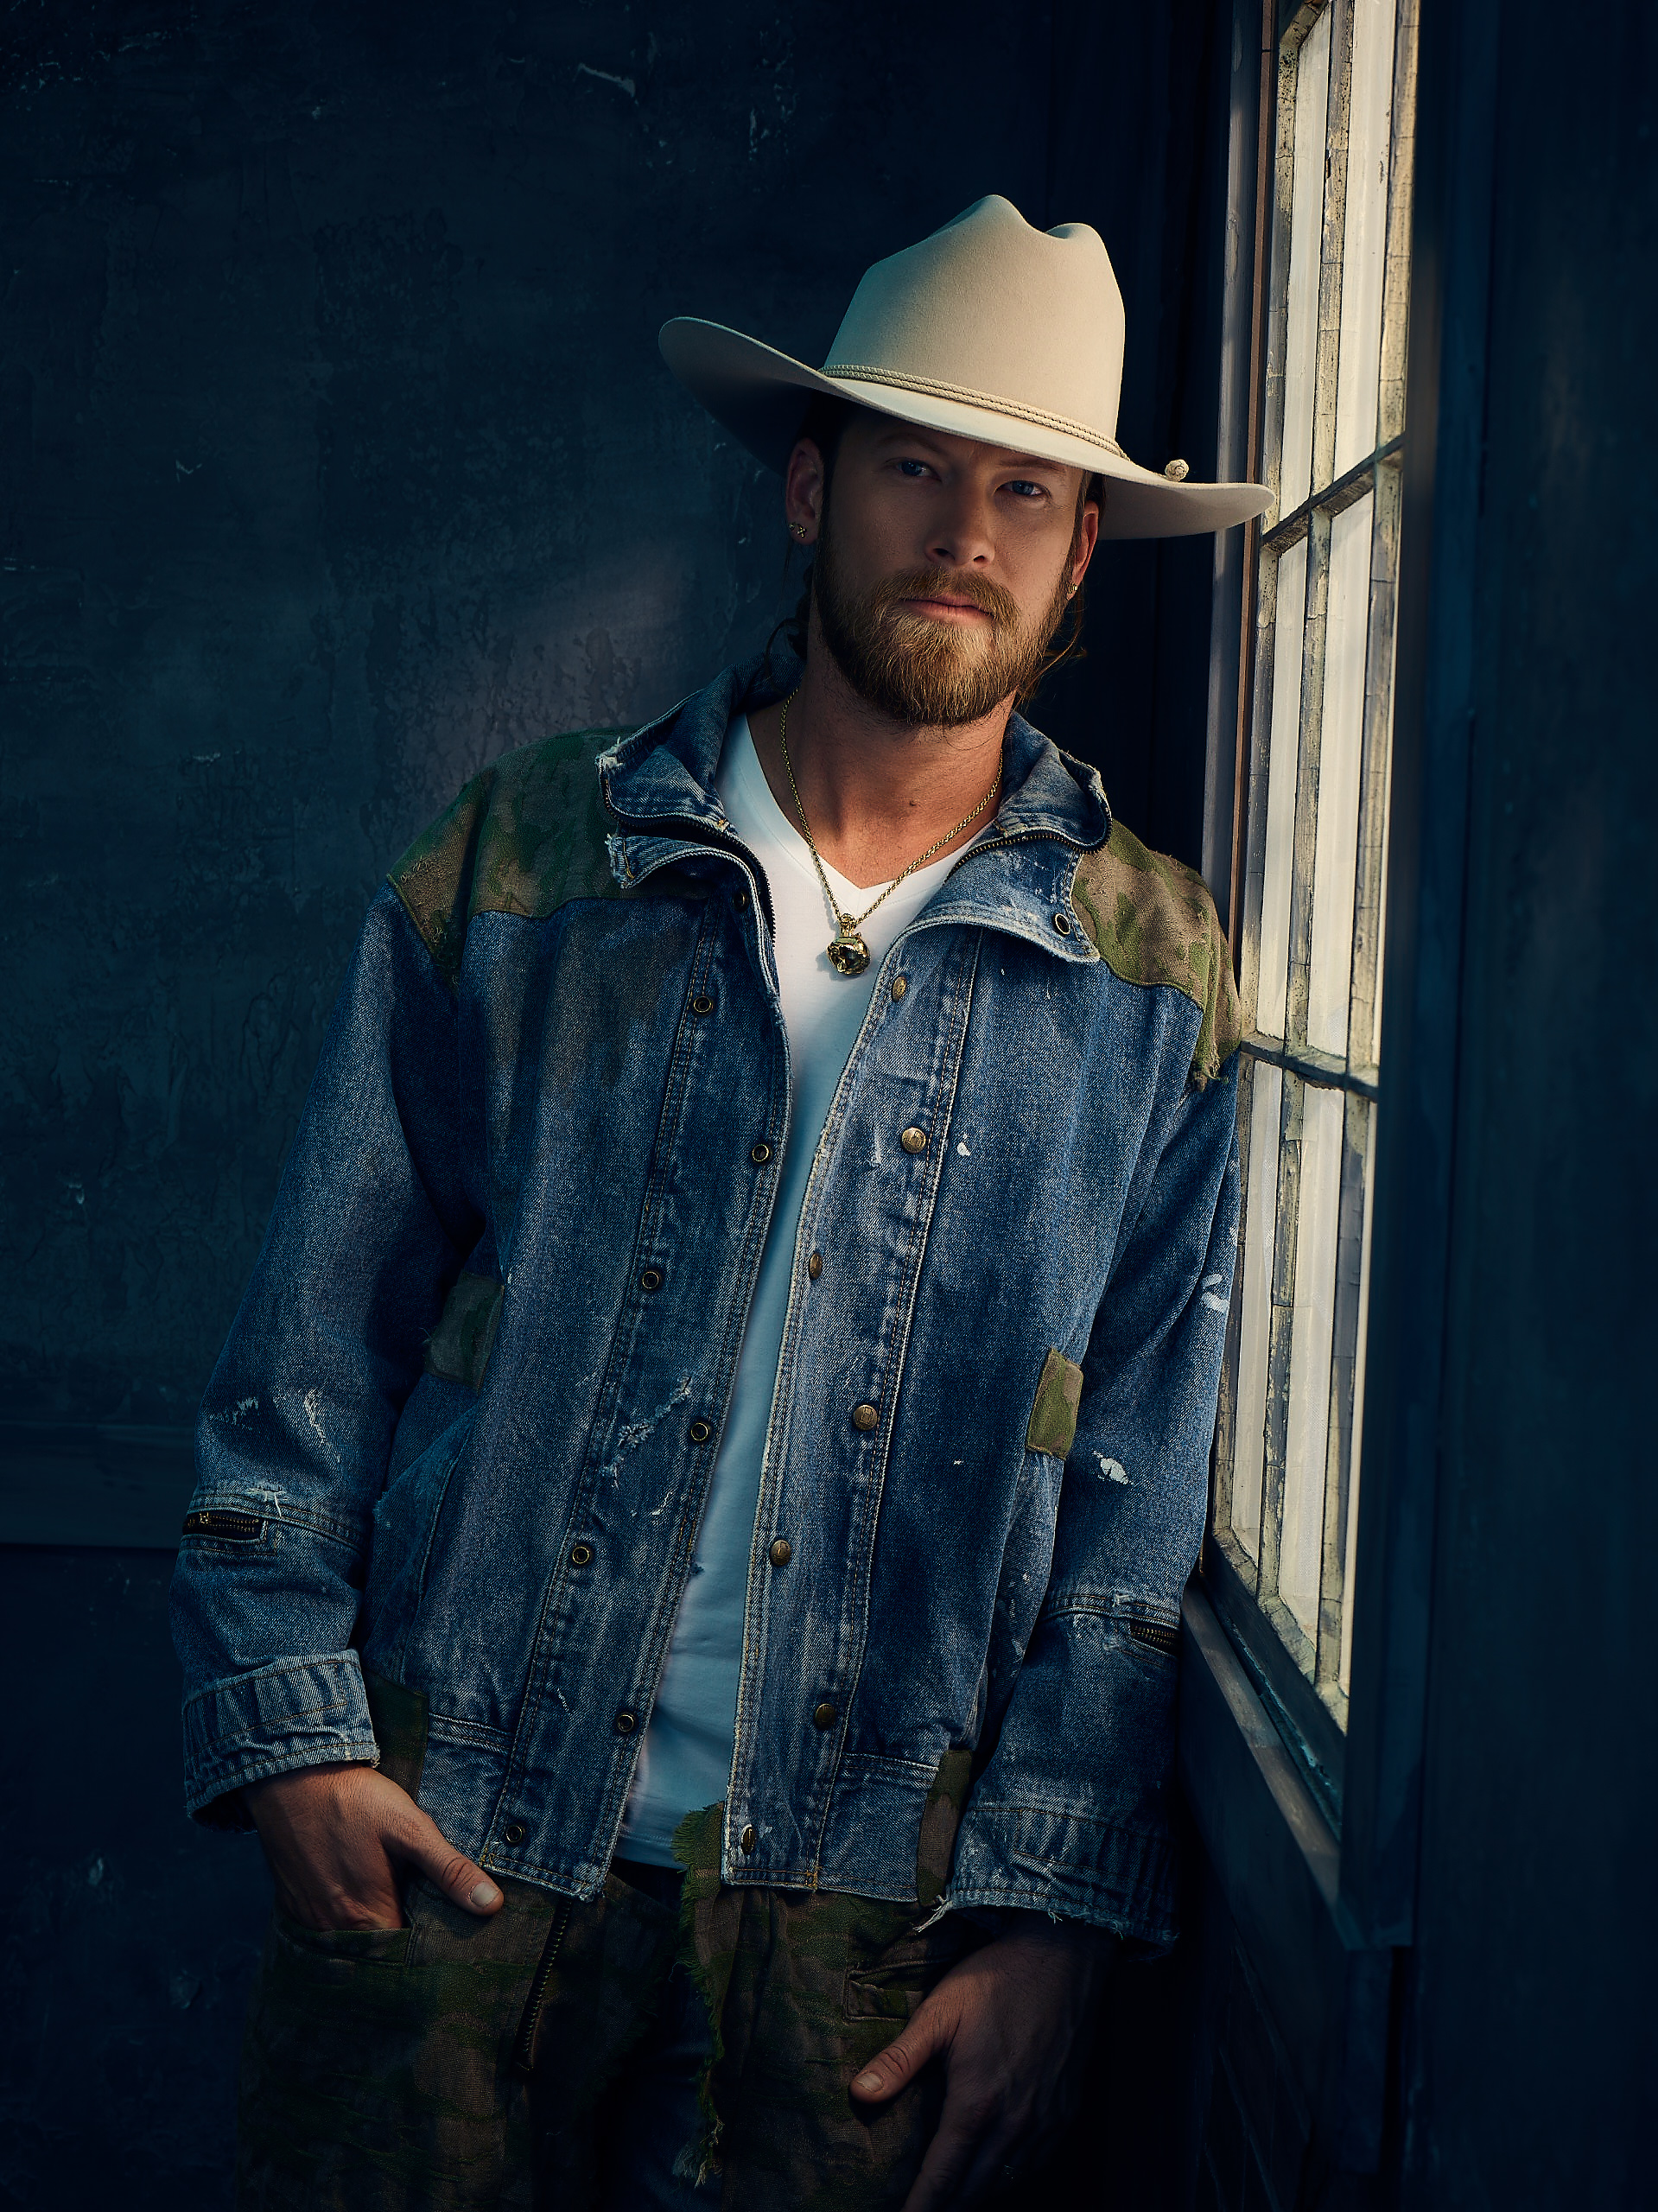 Florida Georgia Line's Brian Kelley Joins The Producing Team Of Country Musical MAY WE ALL